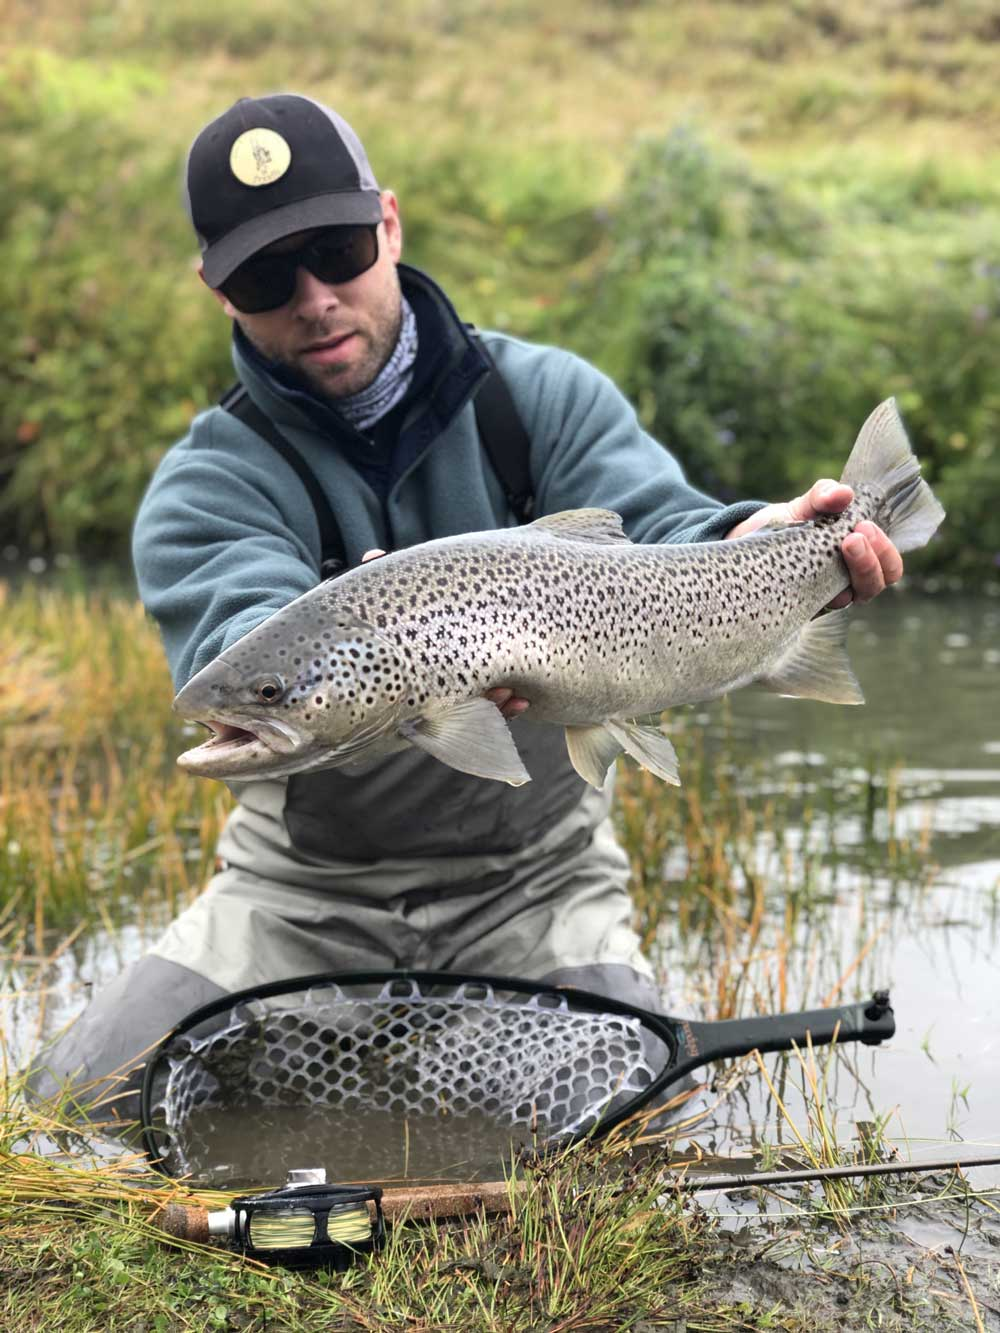 River Varma - Fly Fishing in Iceland - Sea Trout - gofishing.is